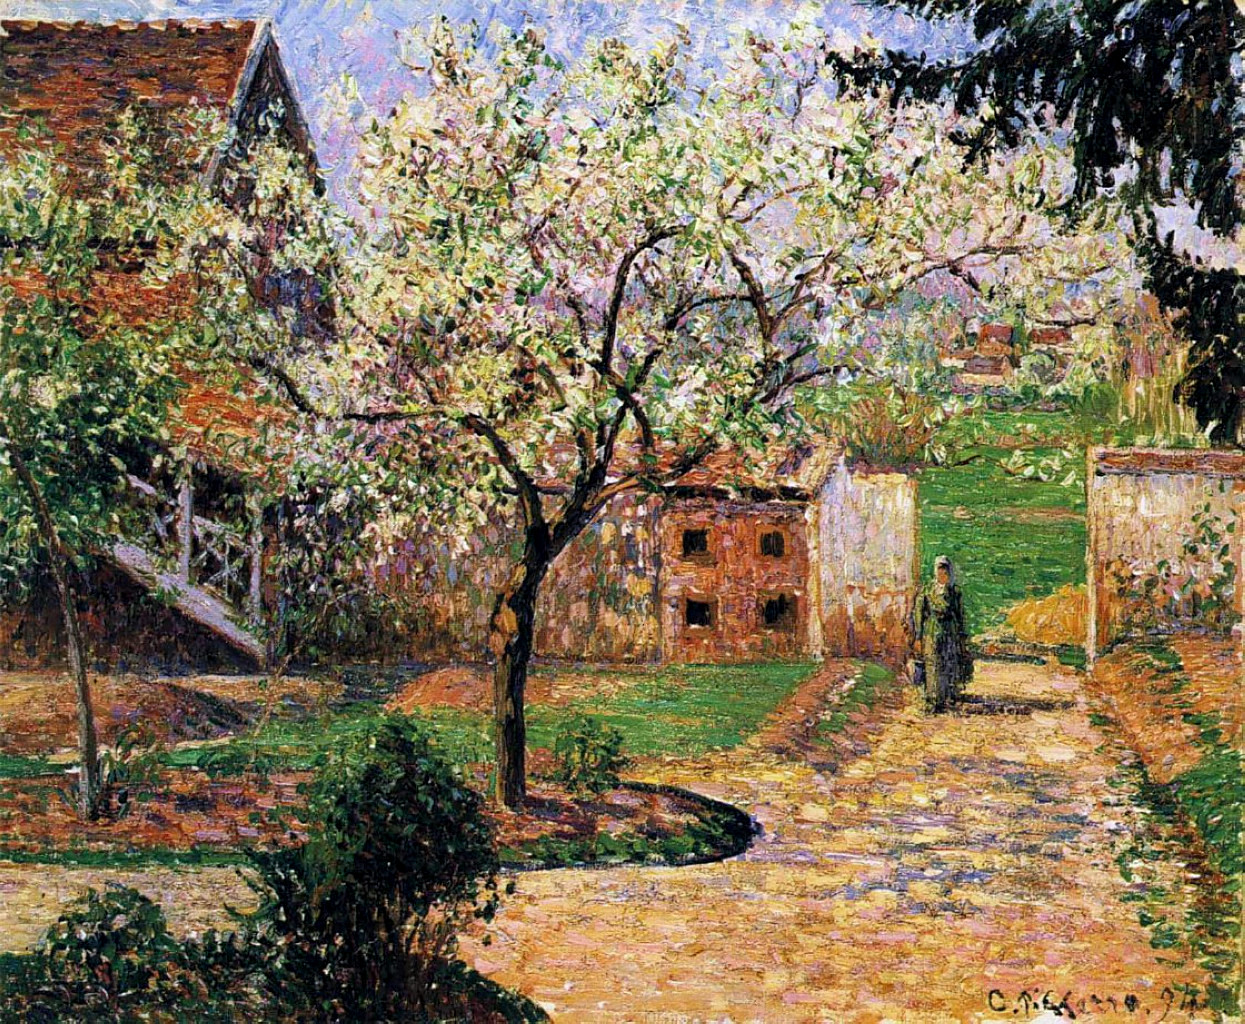 Flowering Plum Tree, Eragny by Camille Pissarro, 1894